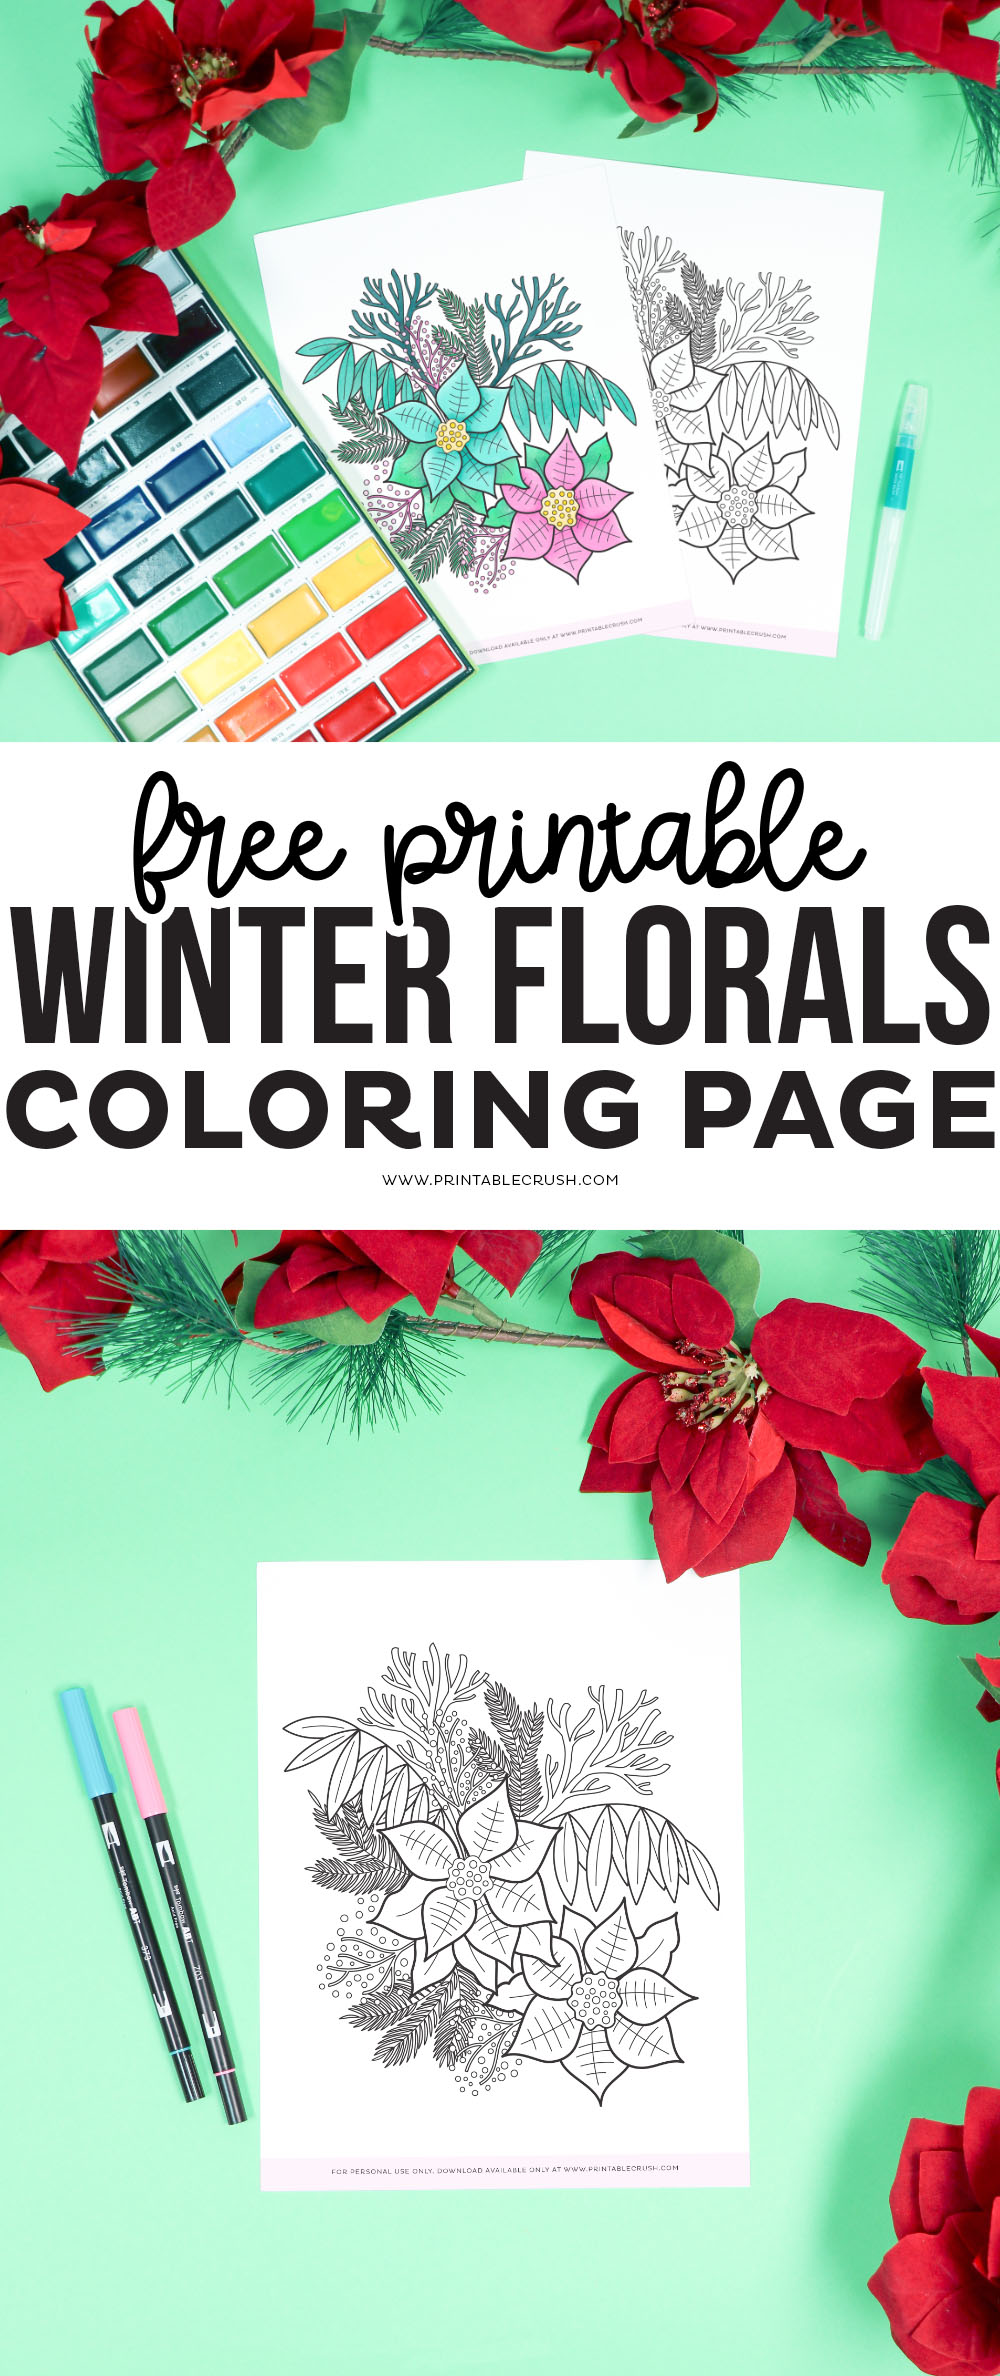 Get cozy and relax with this FREE Winter Florals Coloring Page Printable. There are so many ways you can create with this gorgeous hand drawn design. Free Winter Florals Coloring Sheet- Winter Florals Coloring Page - Free Winter Coloring Page - Printable Crush #coloringpage #adultcoloringpage #wintercoloringpage #handdrawn via @printablecrush